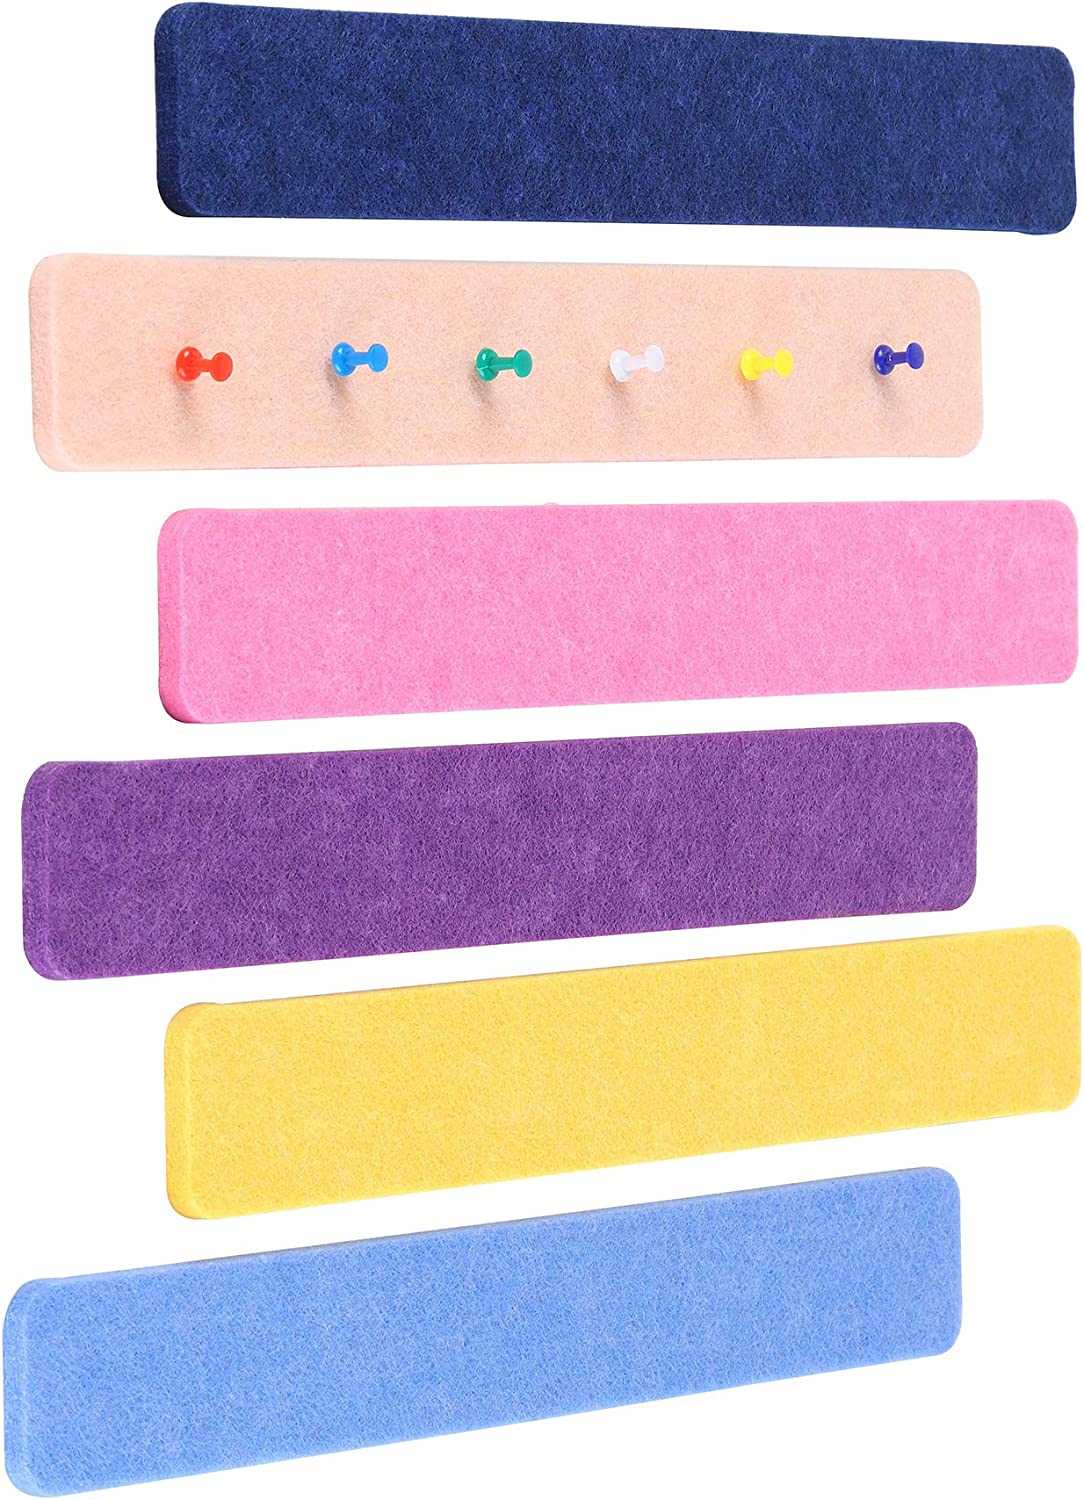 Felt Bulletin Board Bar Strip, Self-Adhesive Felt Board Strip, No Frame Wall Decorative Bulletin Board with 20 Pieces Push Pins for Office Classroom Home, 6 Colors Bars